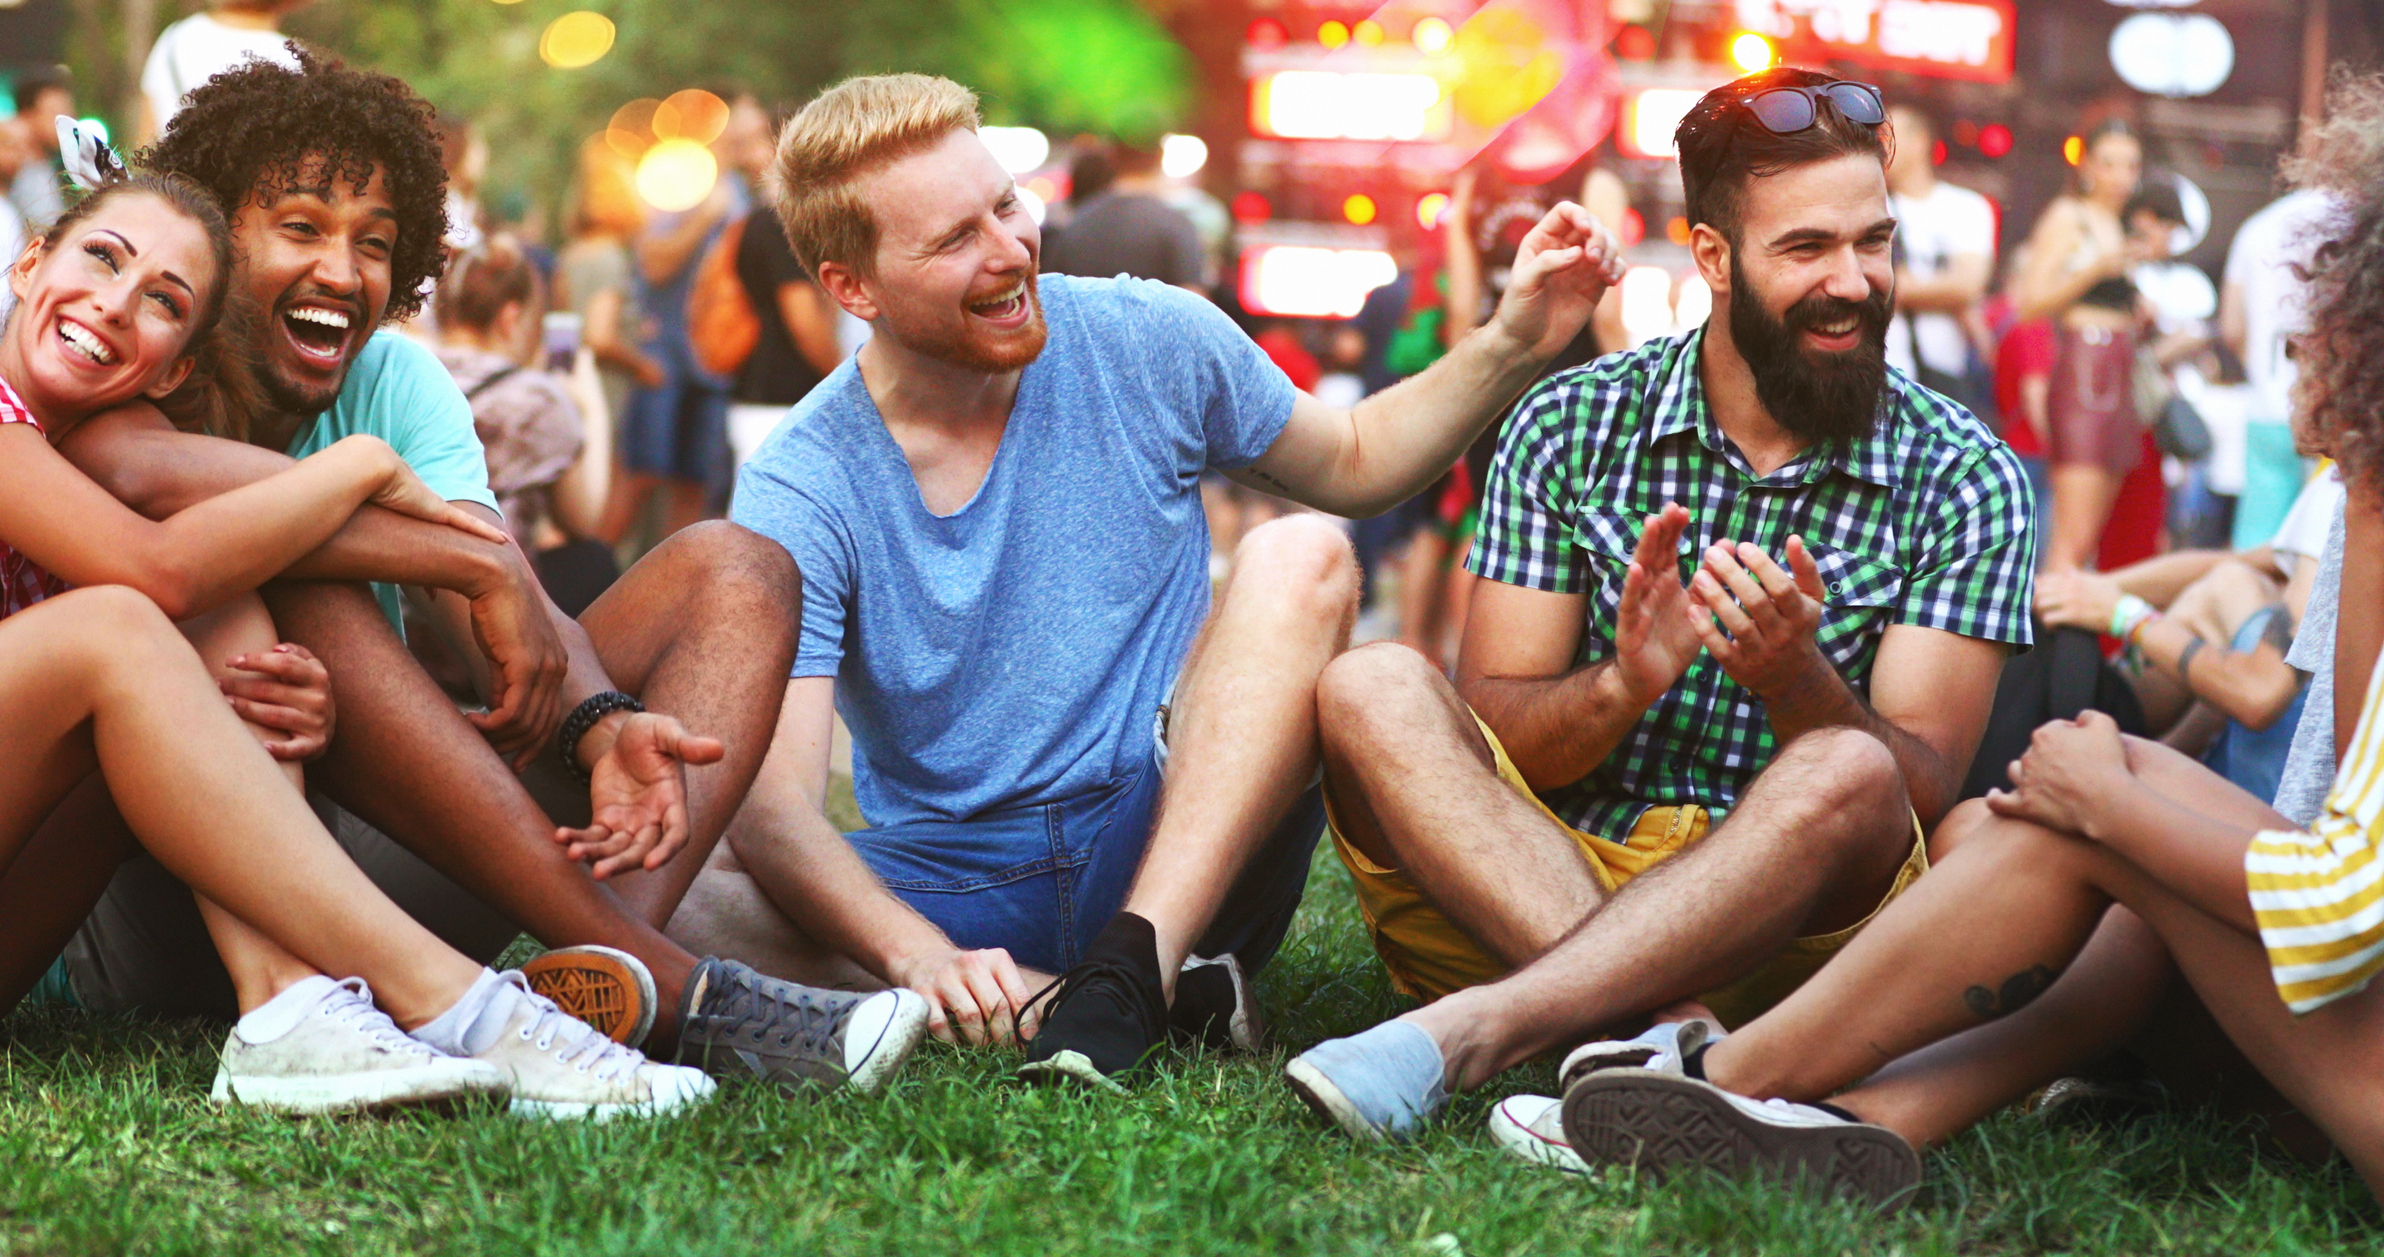 friends gather on grass before event